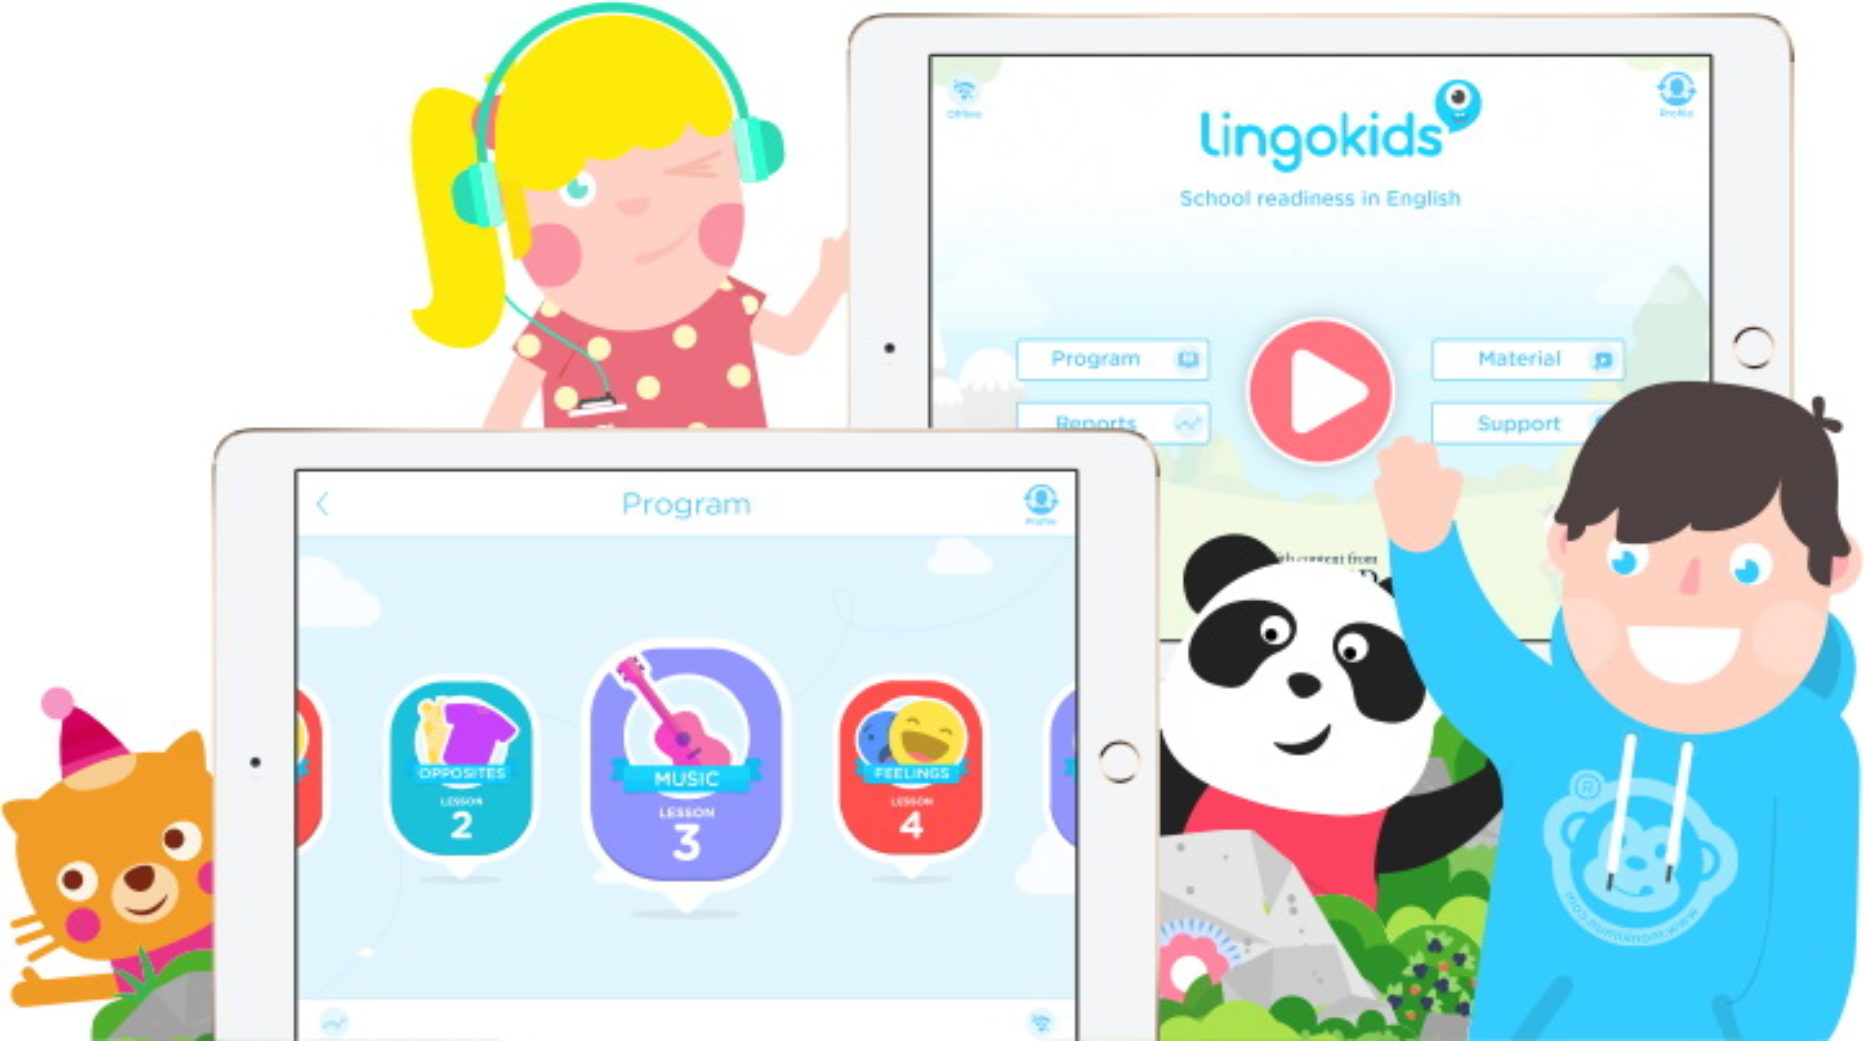 Lingokids app review apps and applications lingokids easy english for kids anywhere in the world fandeluxe Image collections